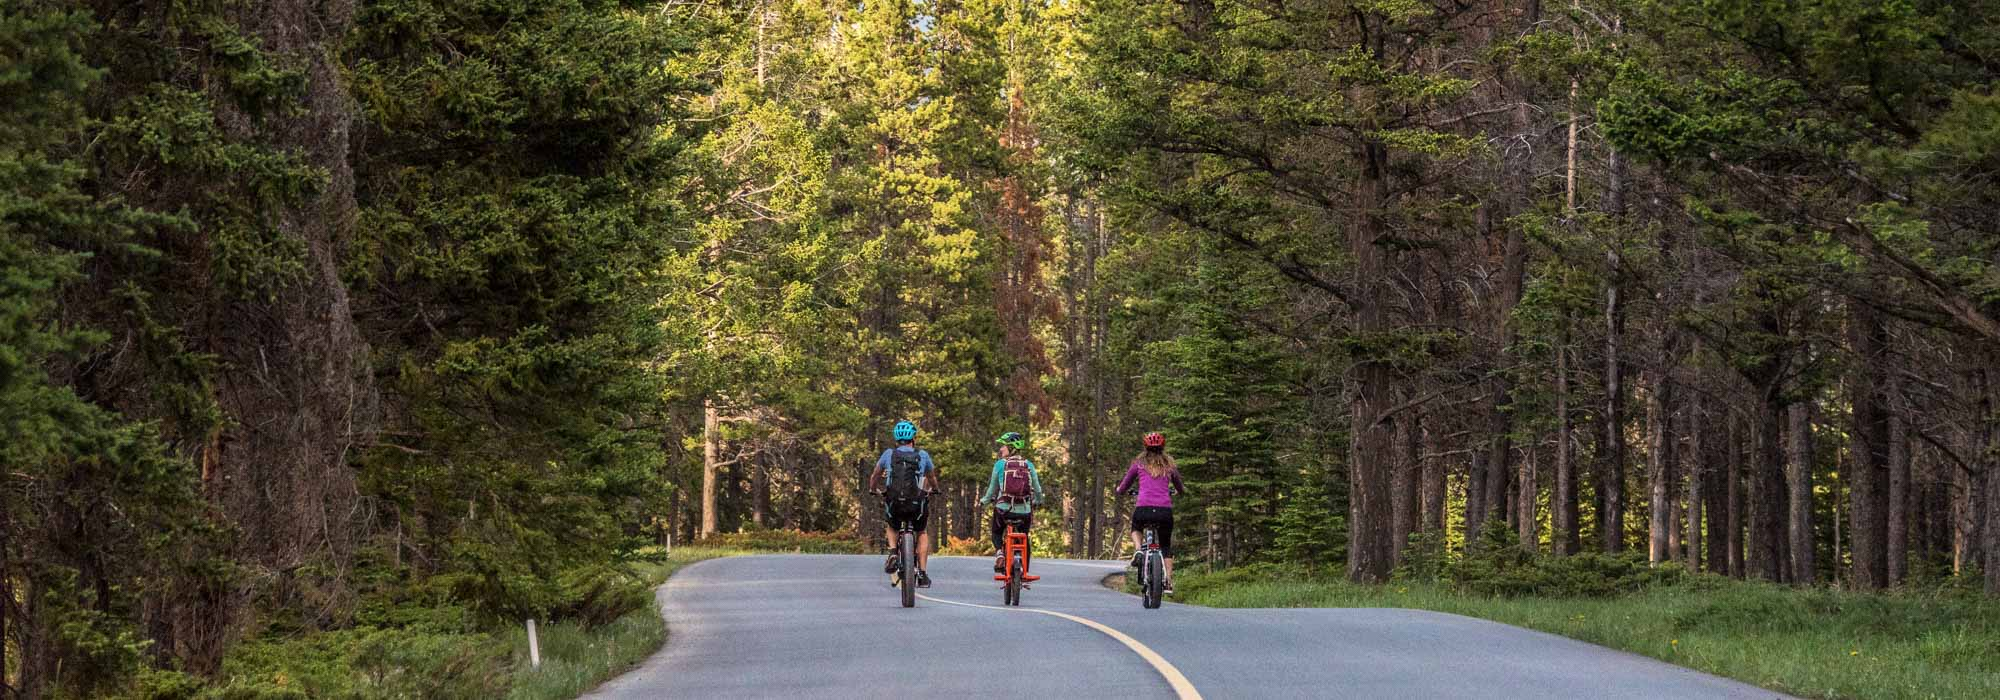 E-bike riders travel along the Golf Course Road loop in Banff National Park.